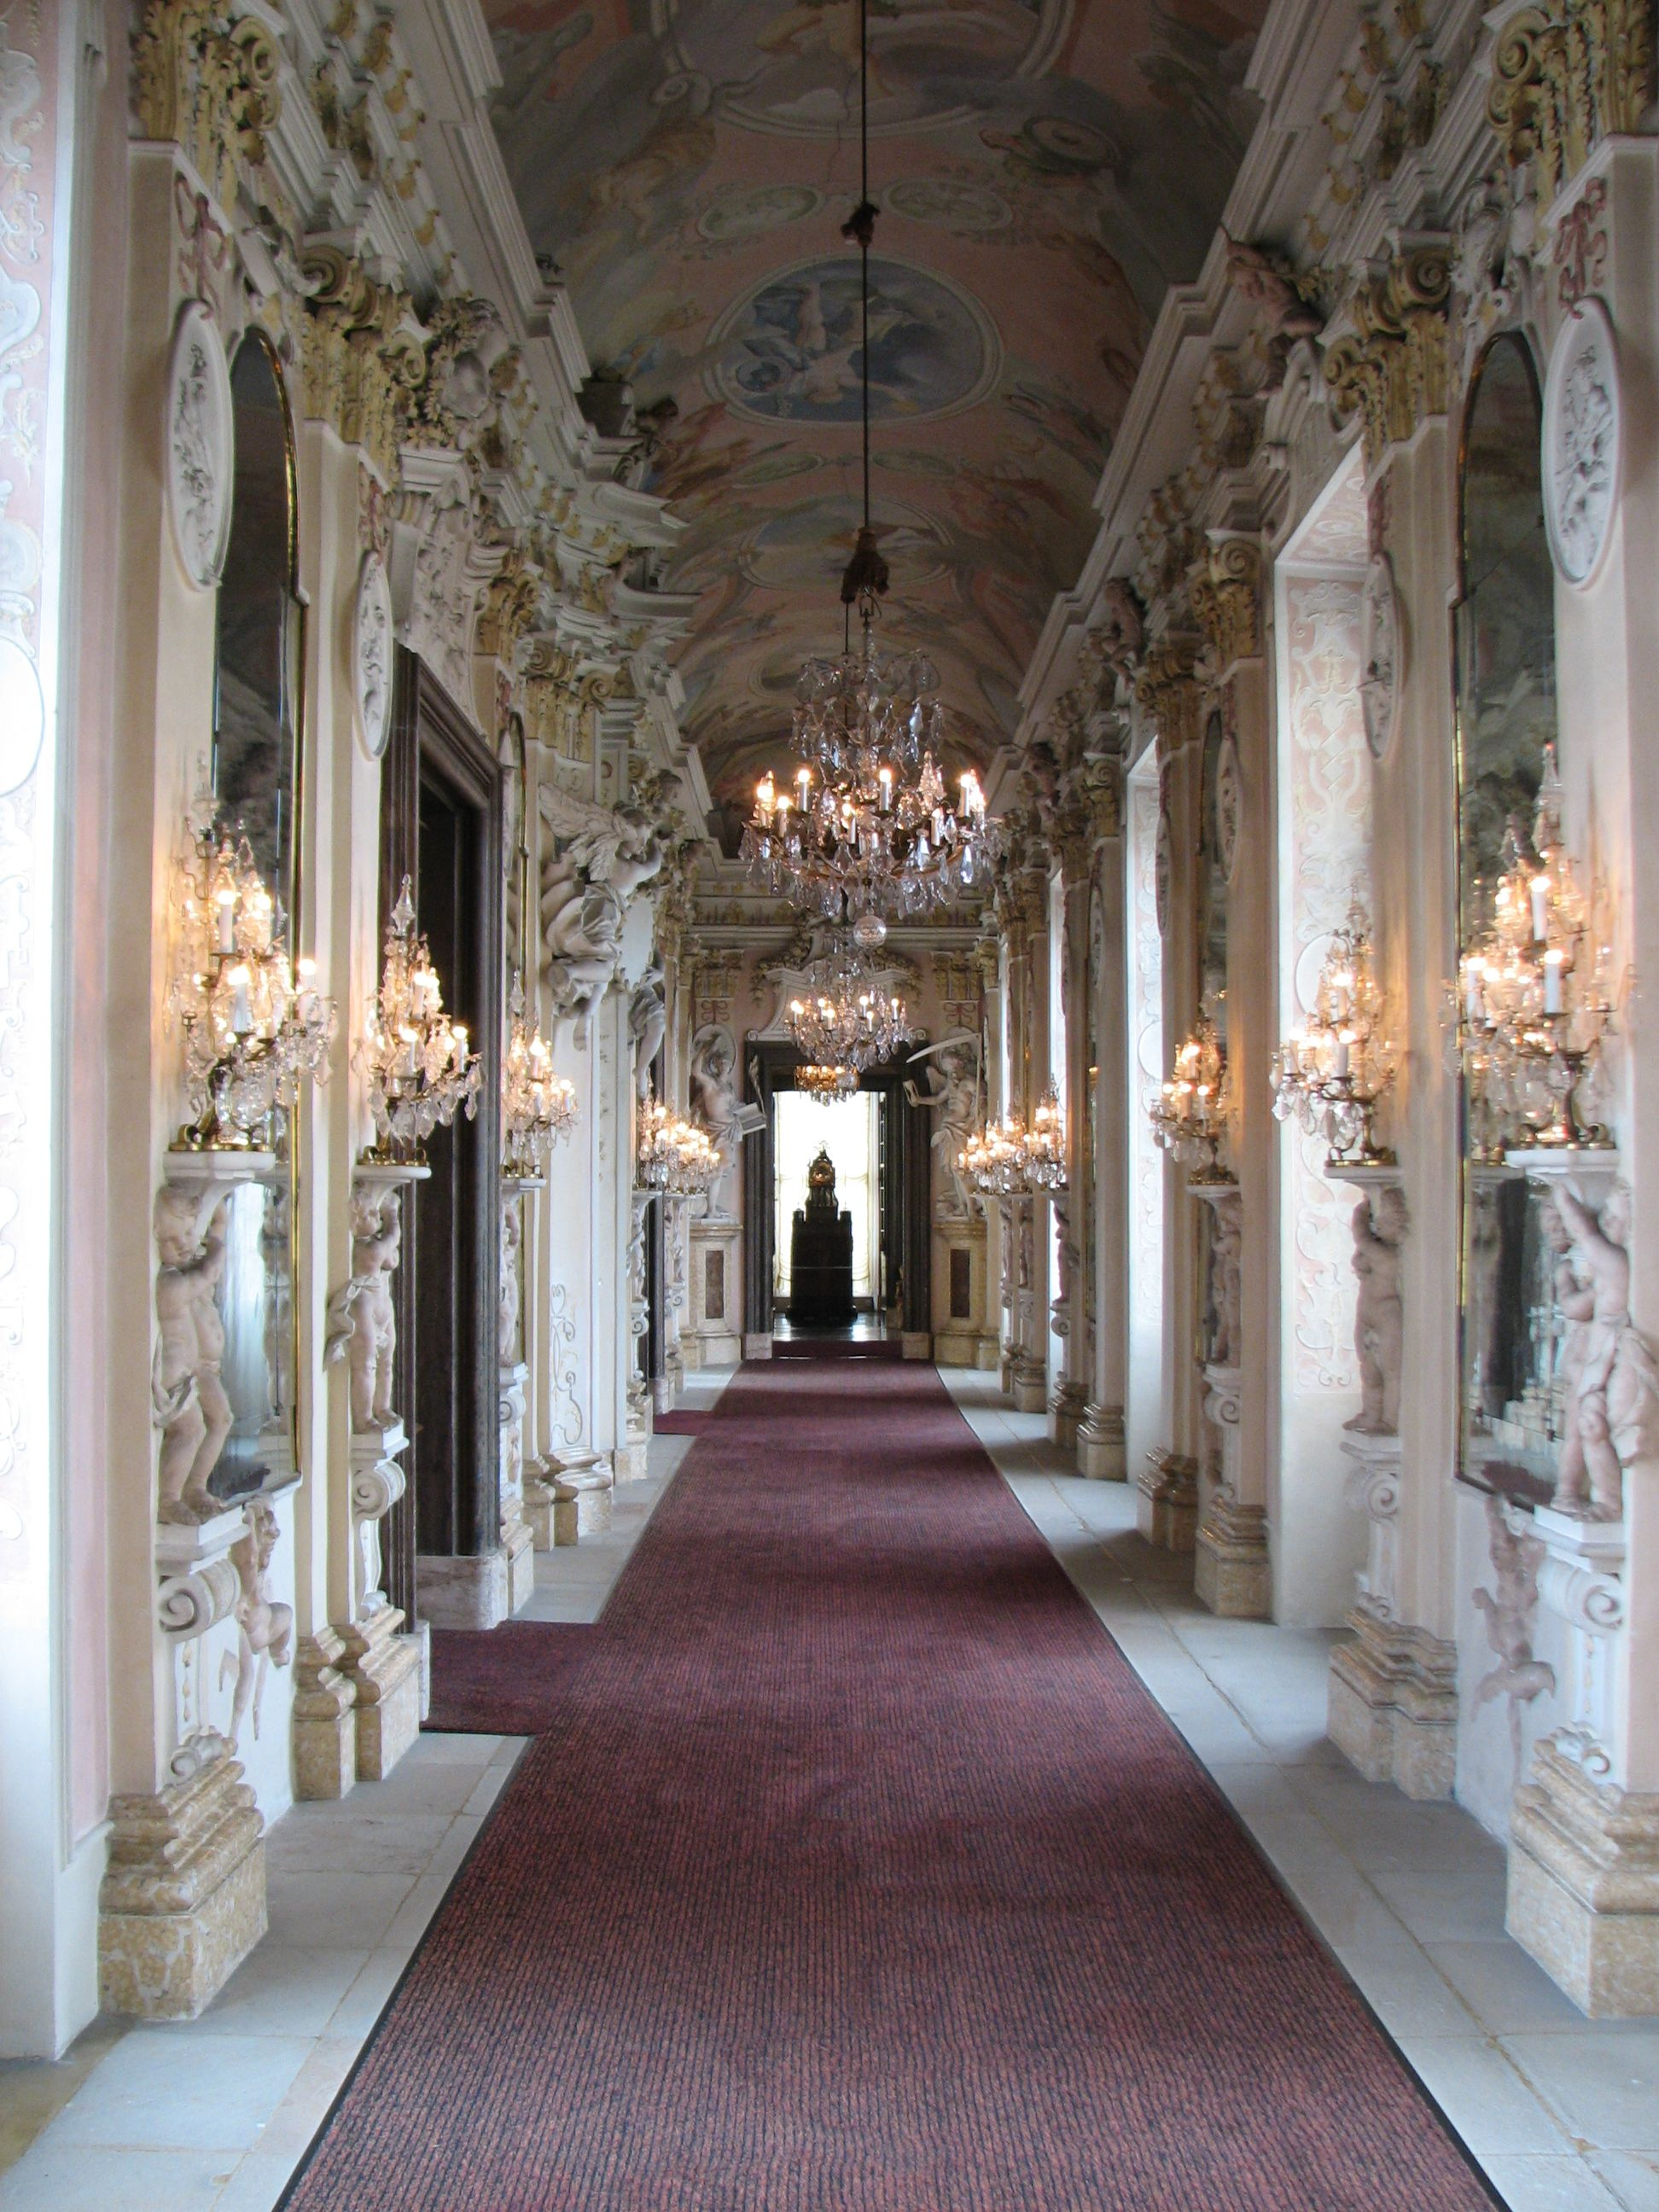 18th century castle of ludwigsburg germany photo mercy royal is pinterest interiores - Diseno de interiores wikipedia ...